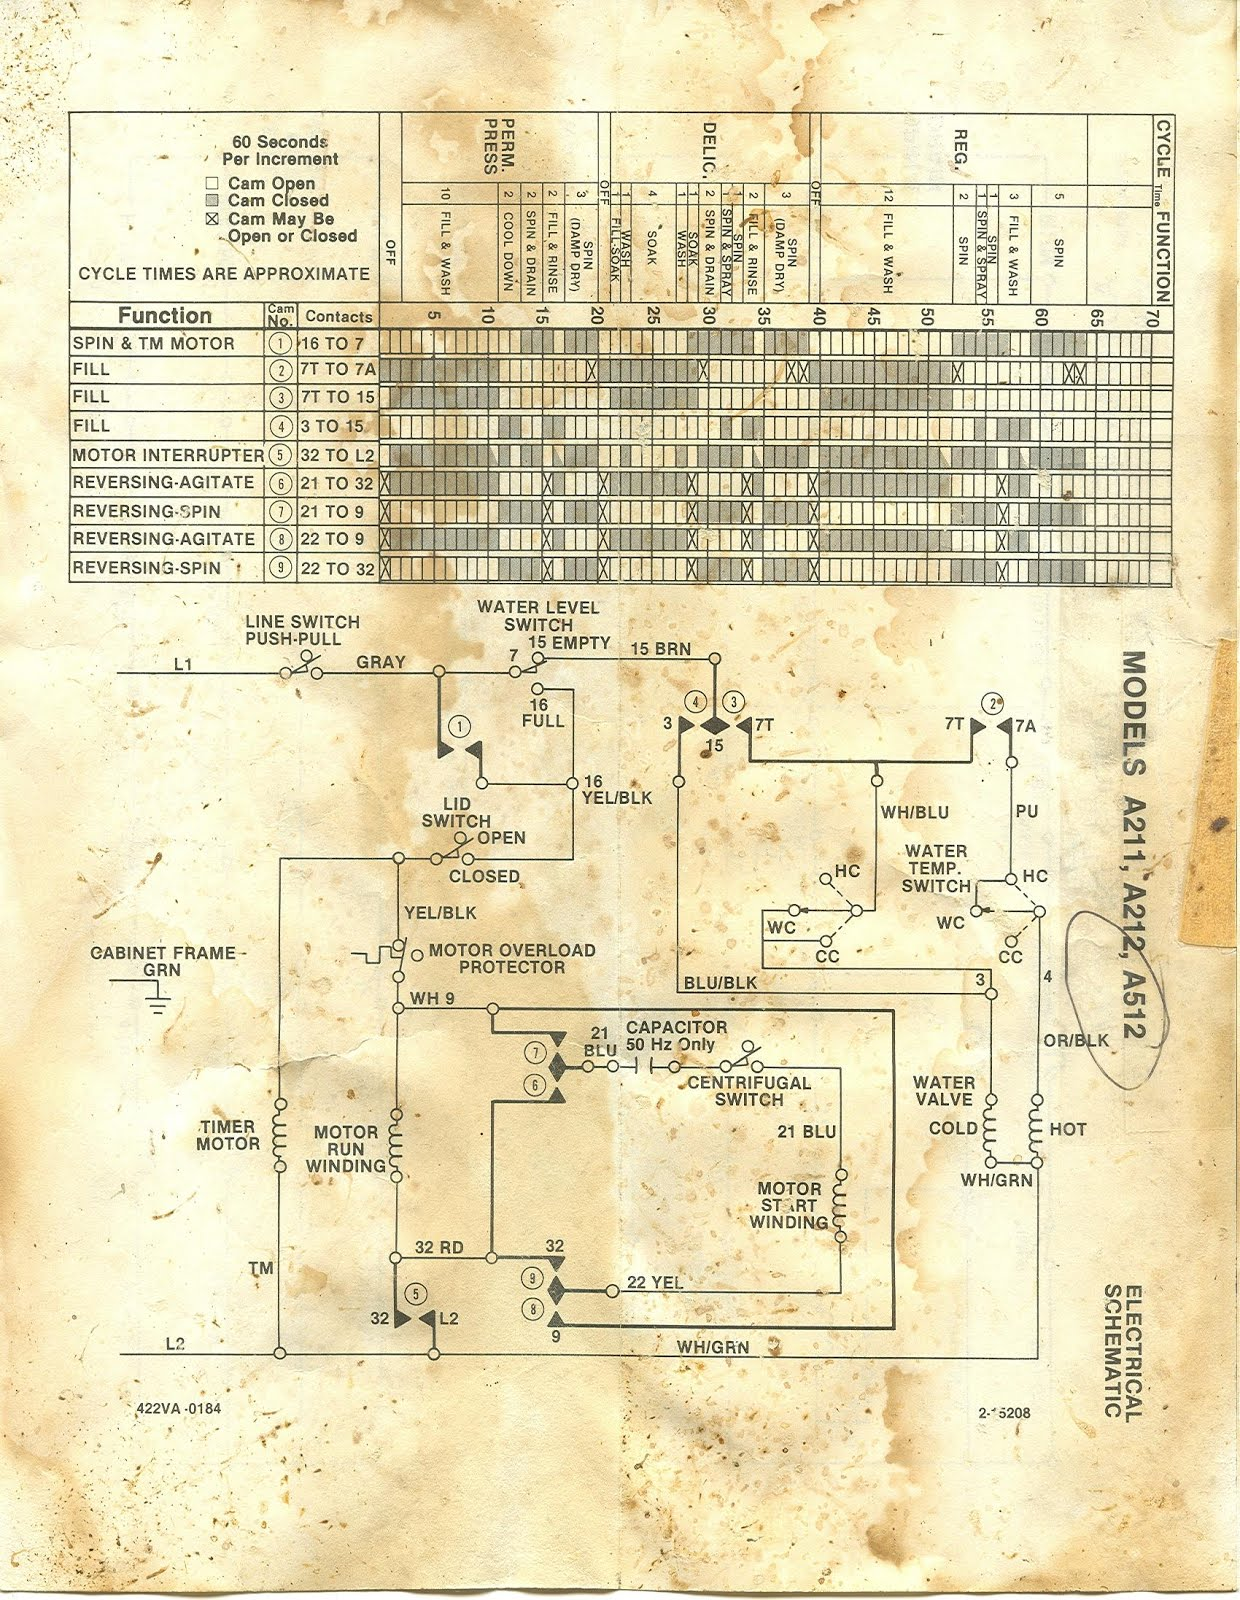 Maytag Dryer Wiring Diagram Appliancepartsproscom